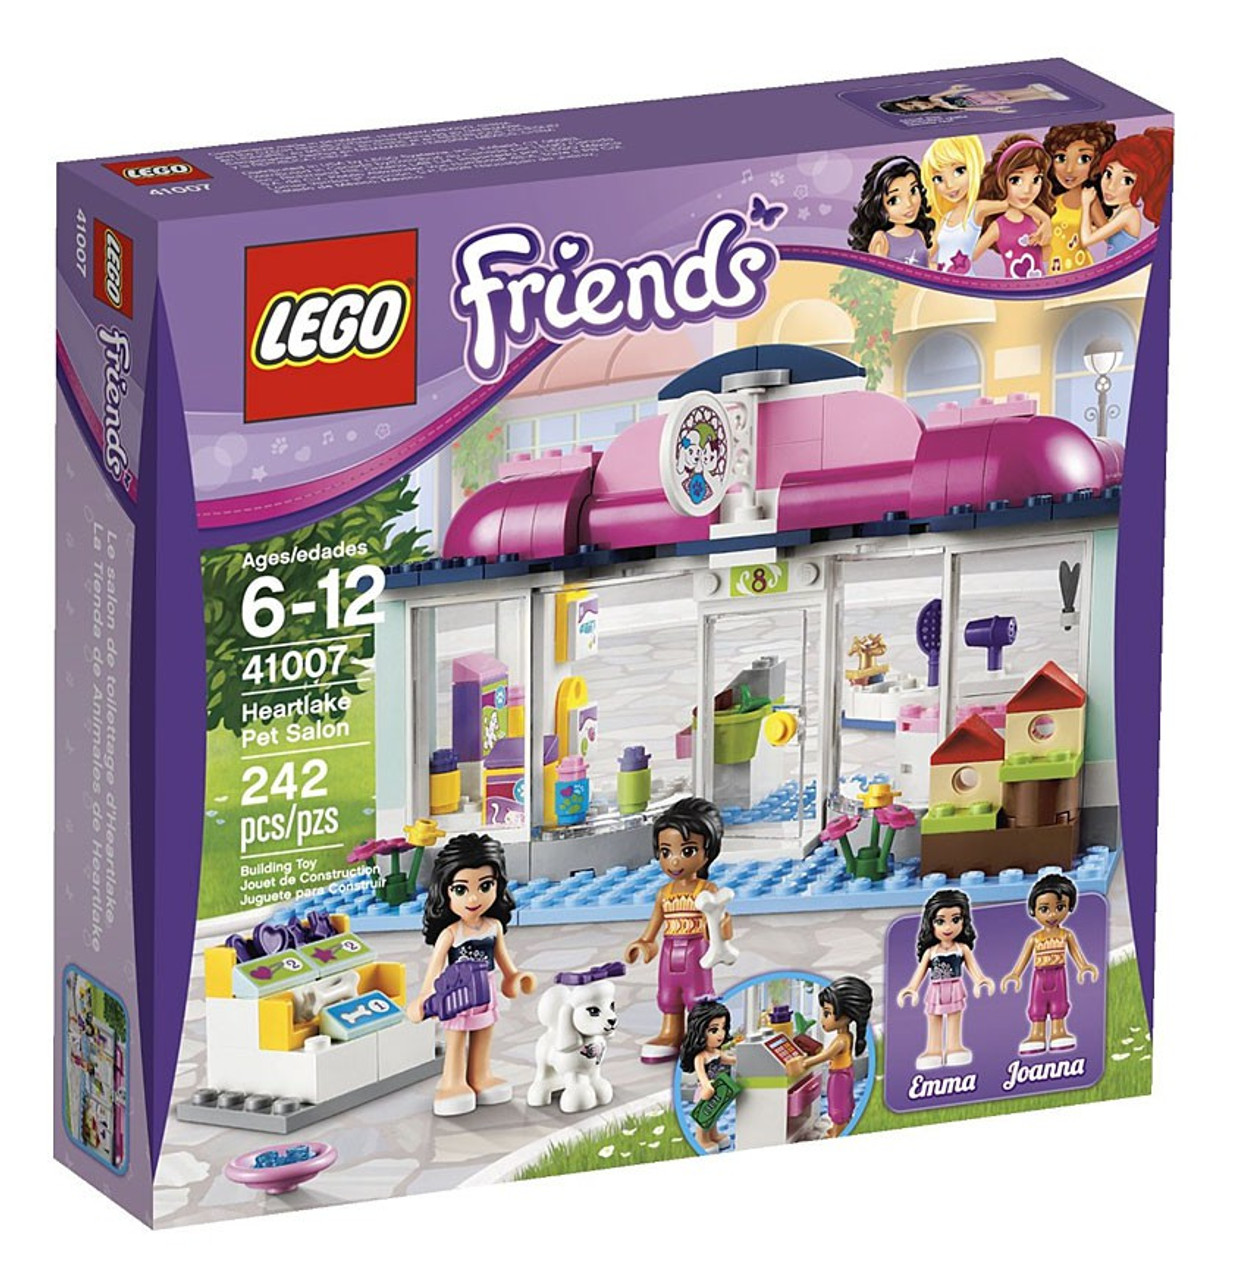 LEGO Friends Heartlake Pet Salon Set #41007